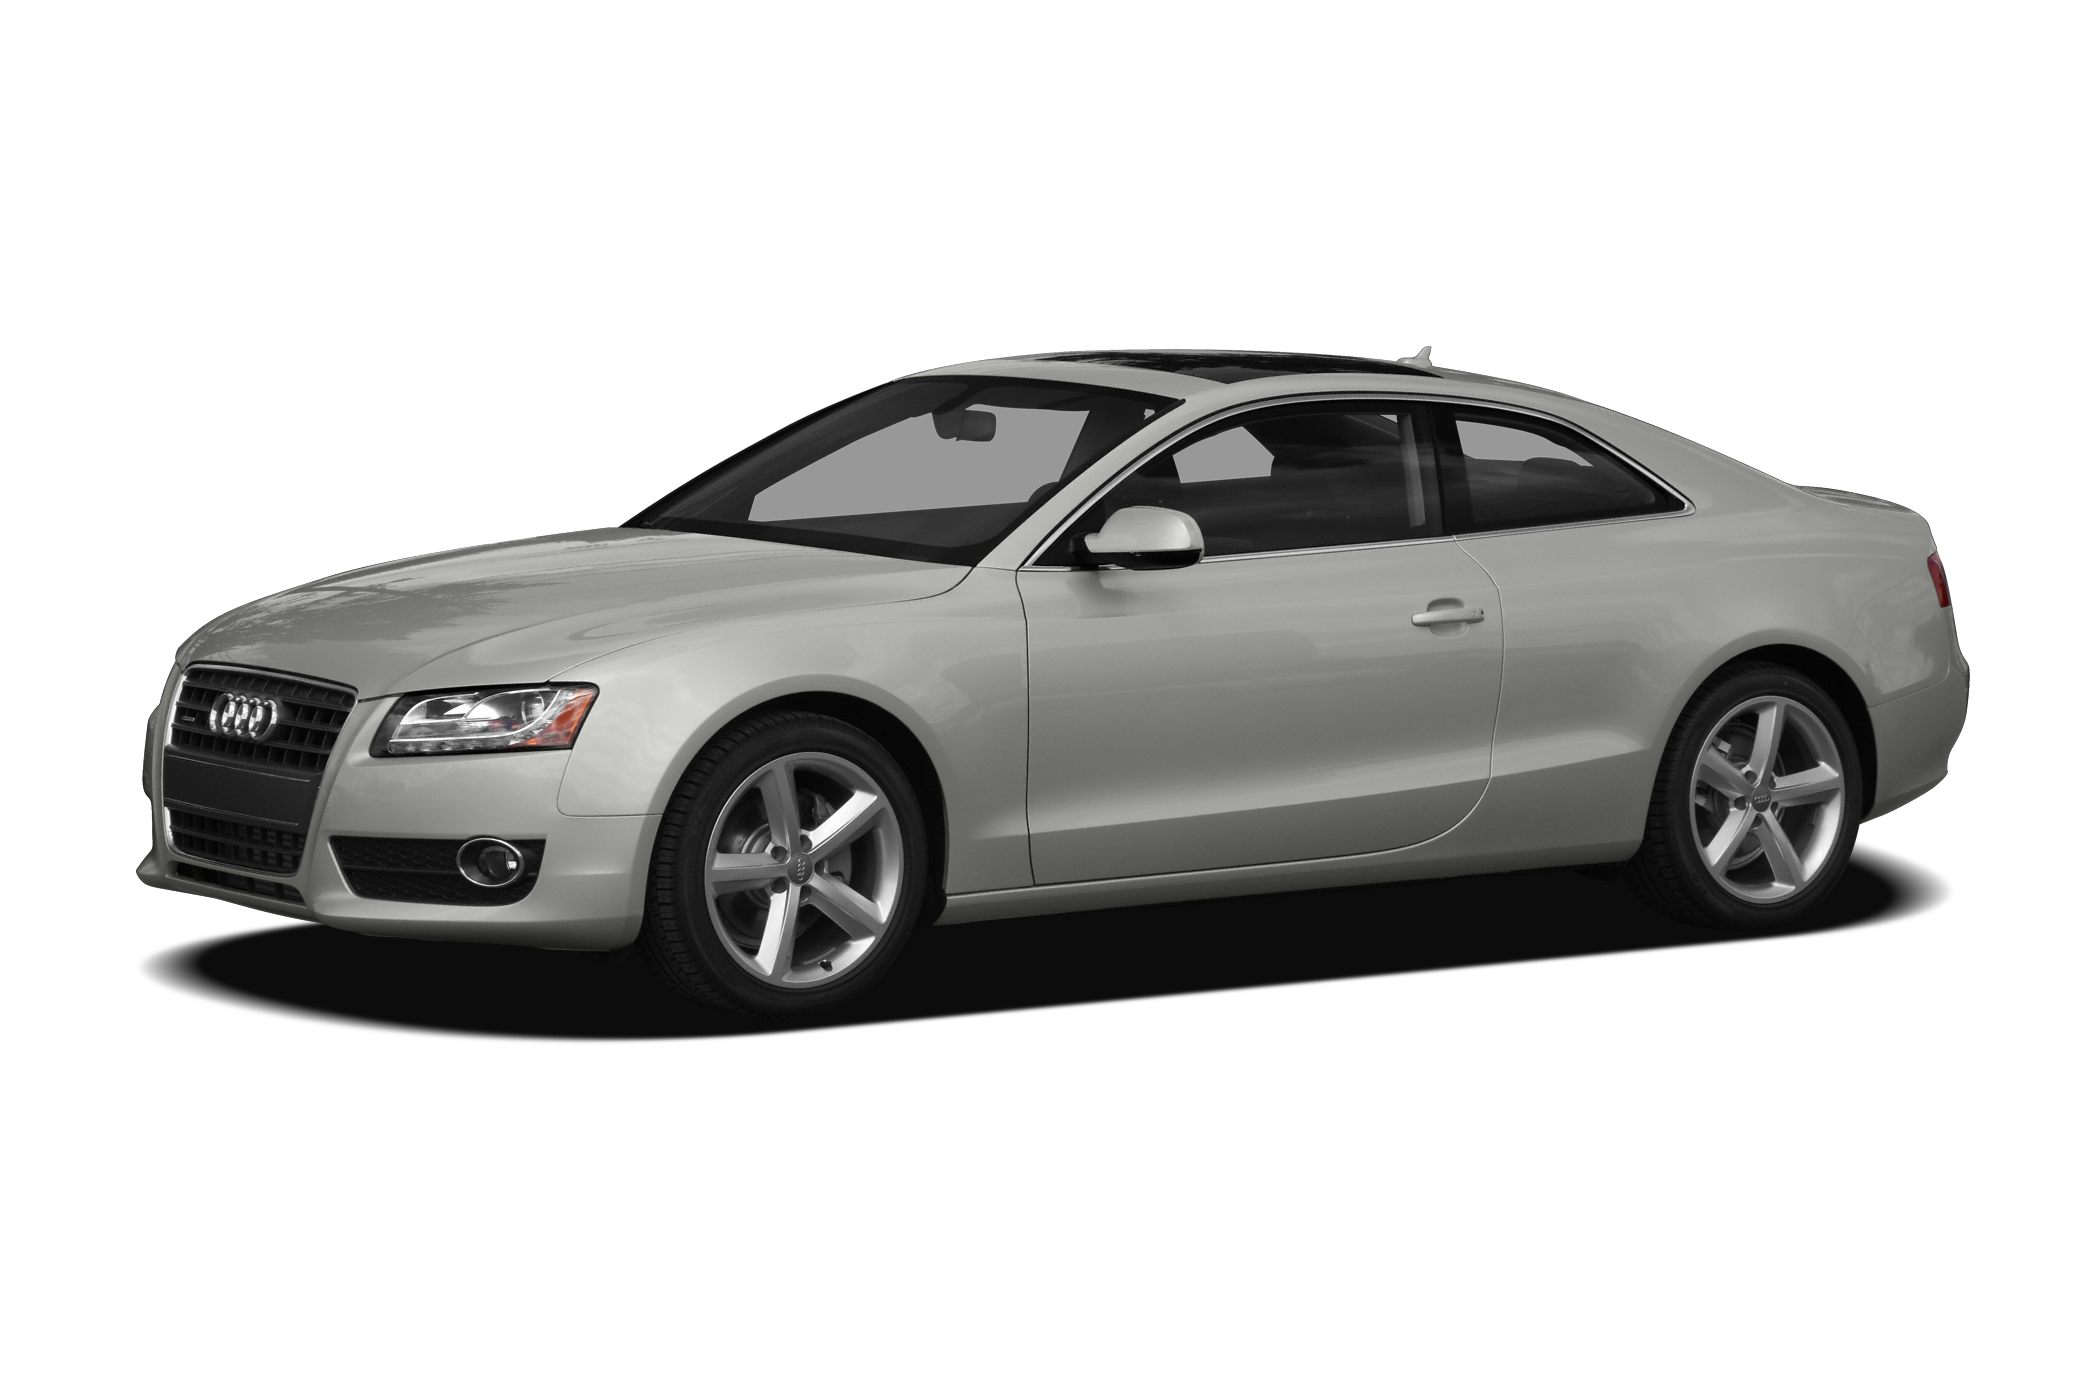 2010 Audi A5 Specs and Prices